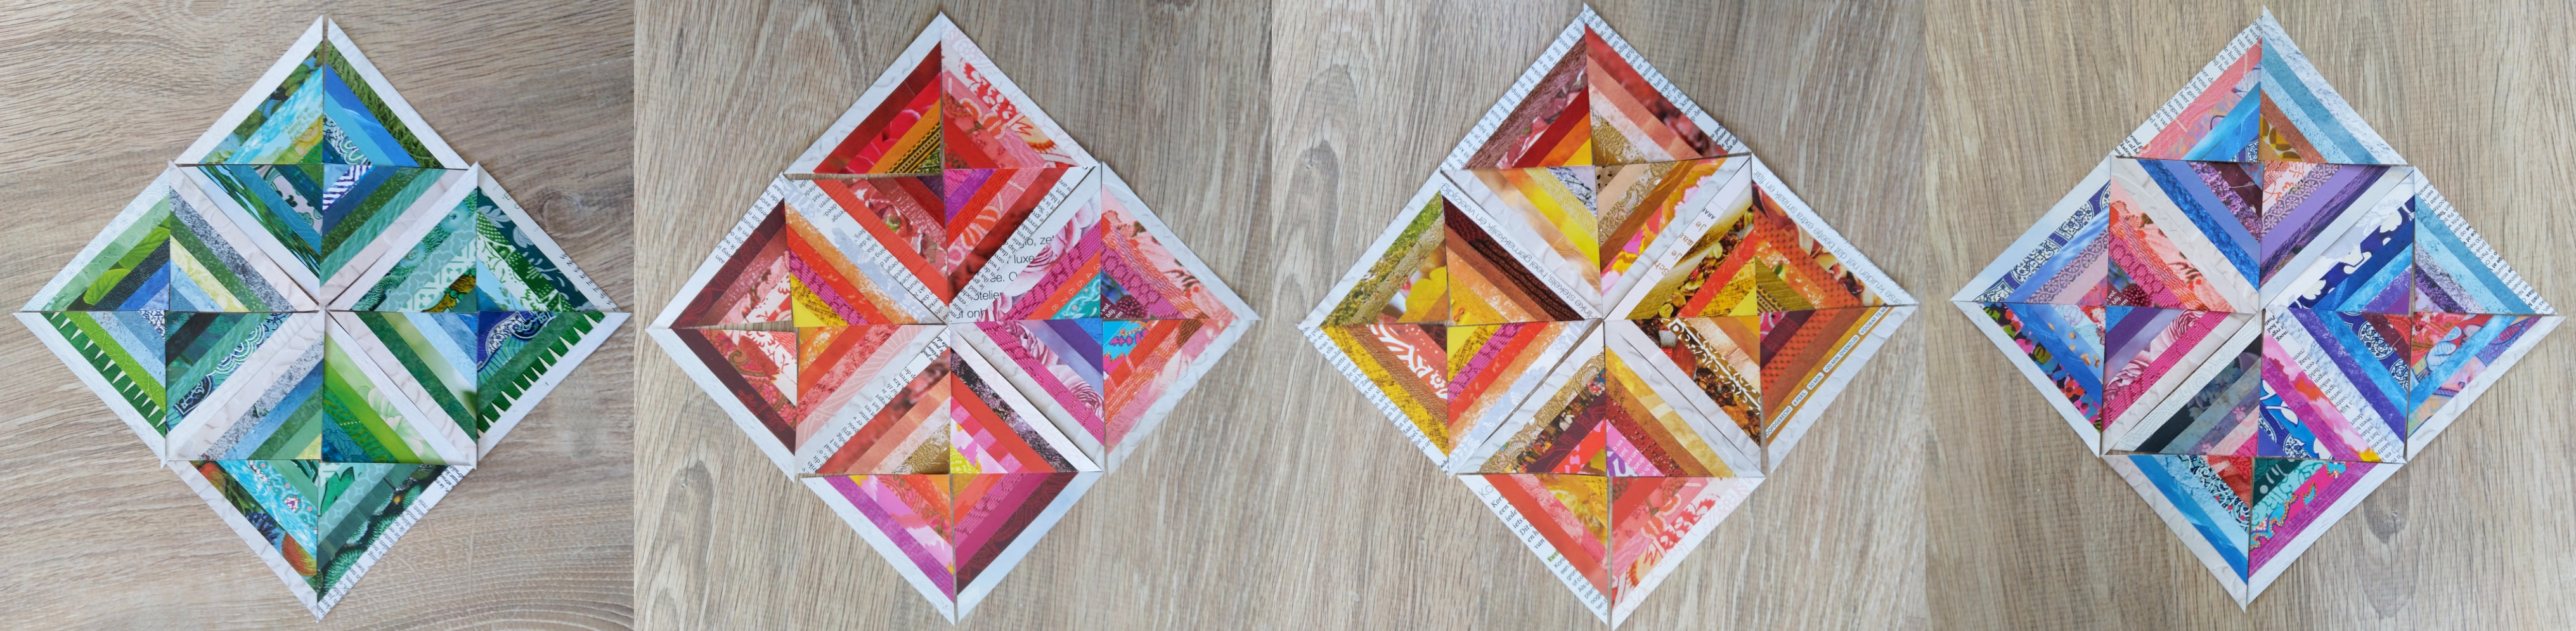 DIY papiercollage blokken